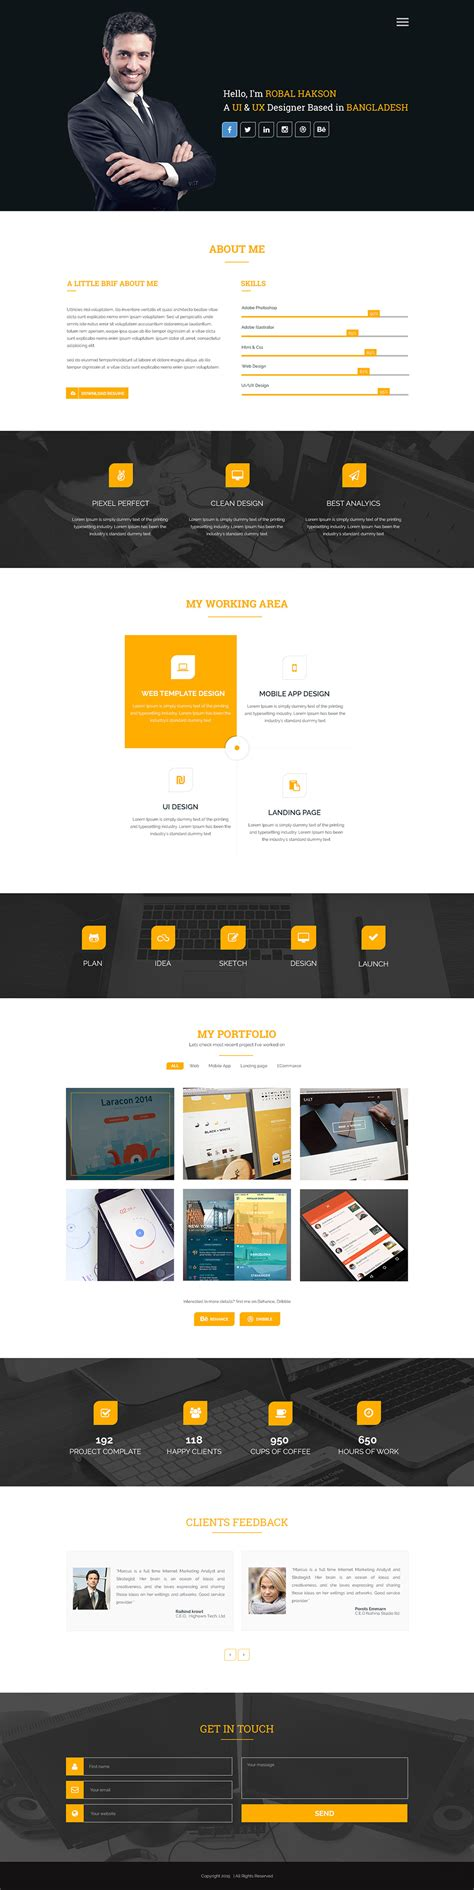 High Quality 50 Free Corporate And Business Web Templates Psd Download Download Psd Free Ux Portfolio Template